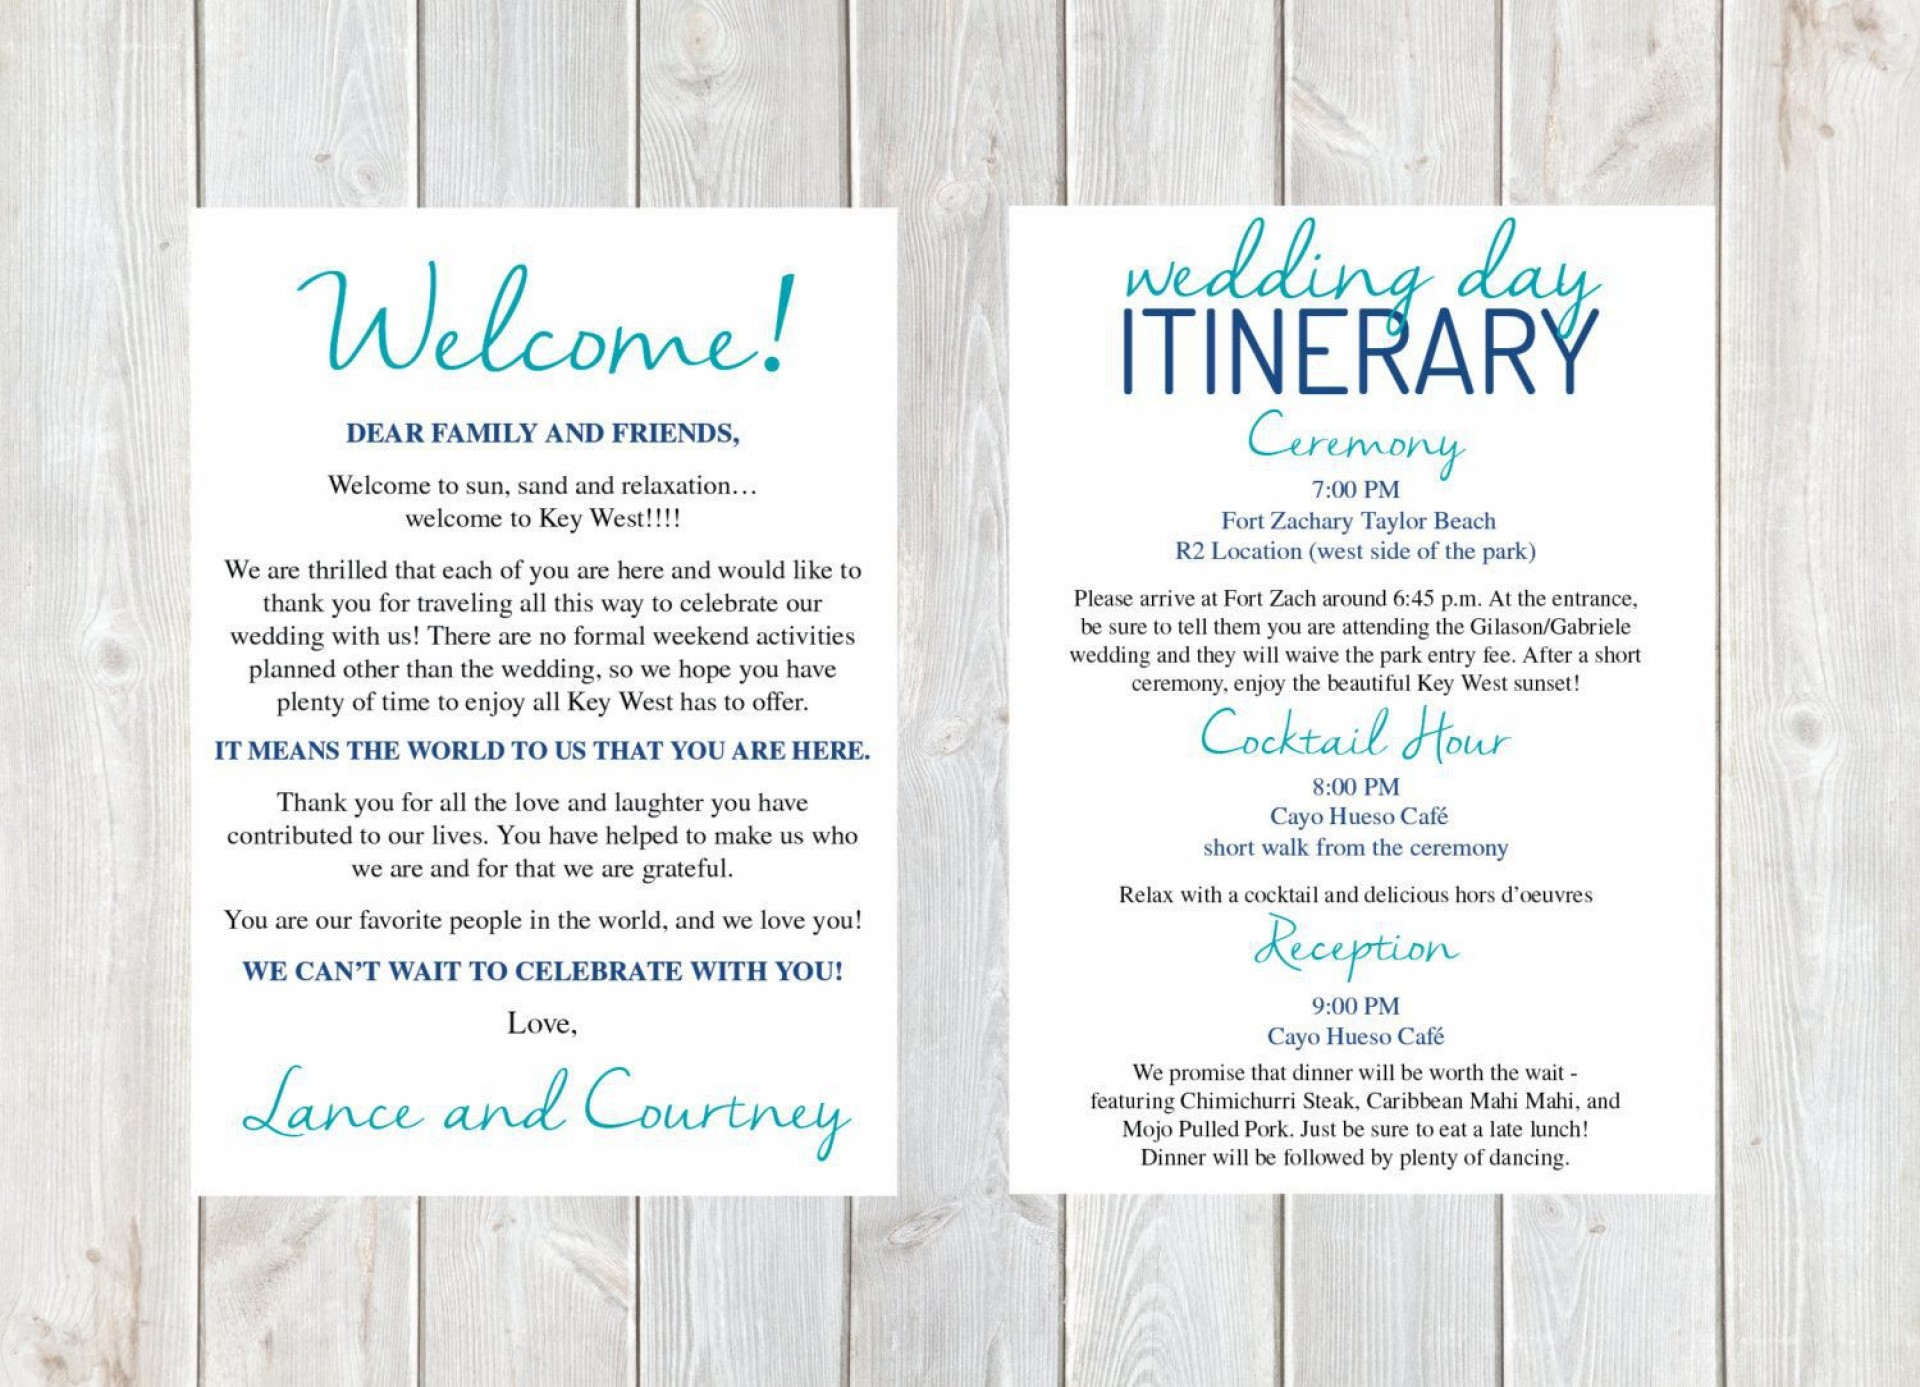 001 Fantastic Destination Wedding Welcome Letter And Itinerary Template High Def 1920